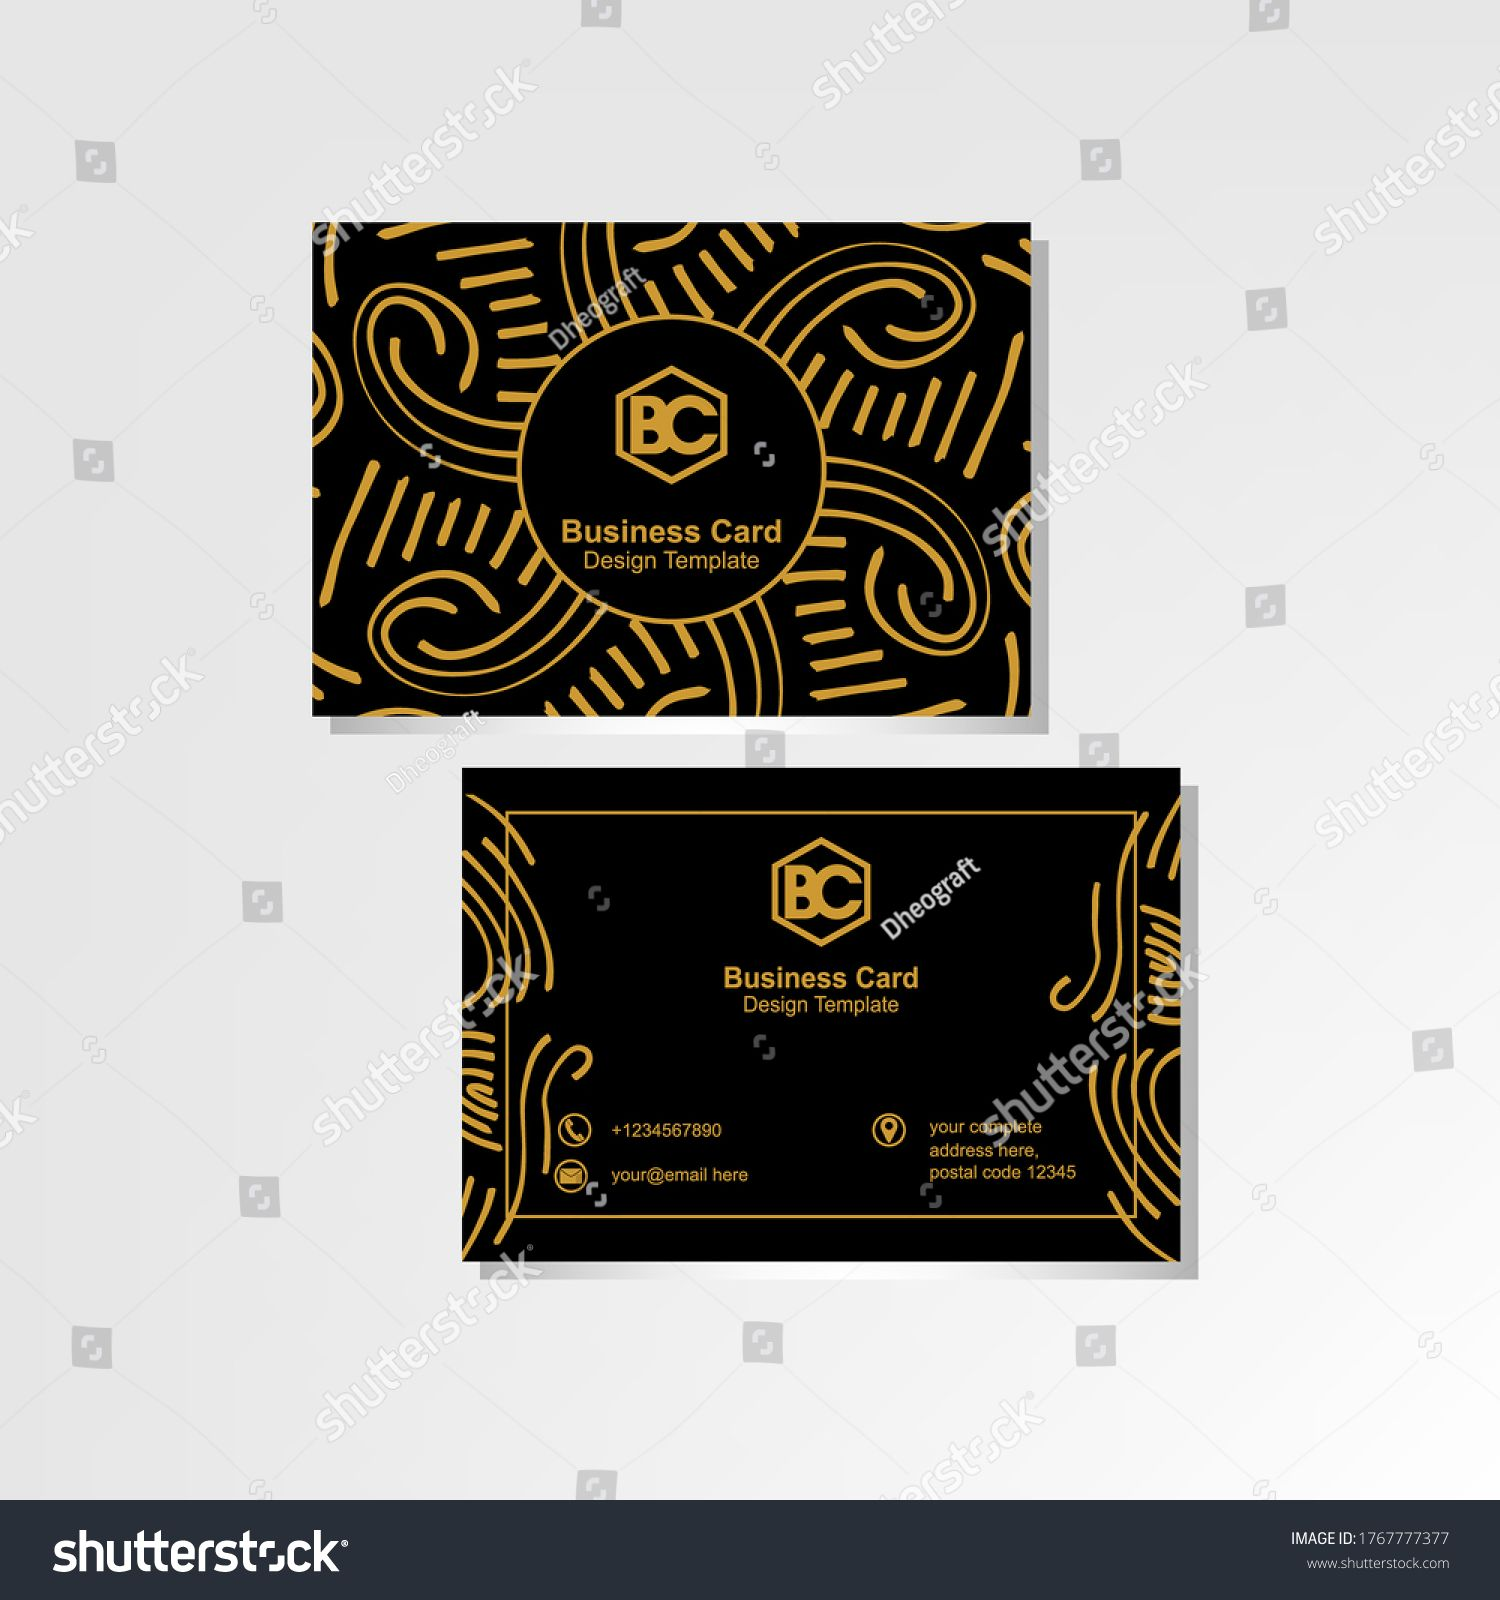 Luxurious Business Card Design Template With Abstract Floral Ornaments Luxury Business Cards Business Card Template Design Business Card Design